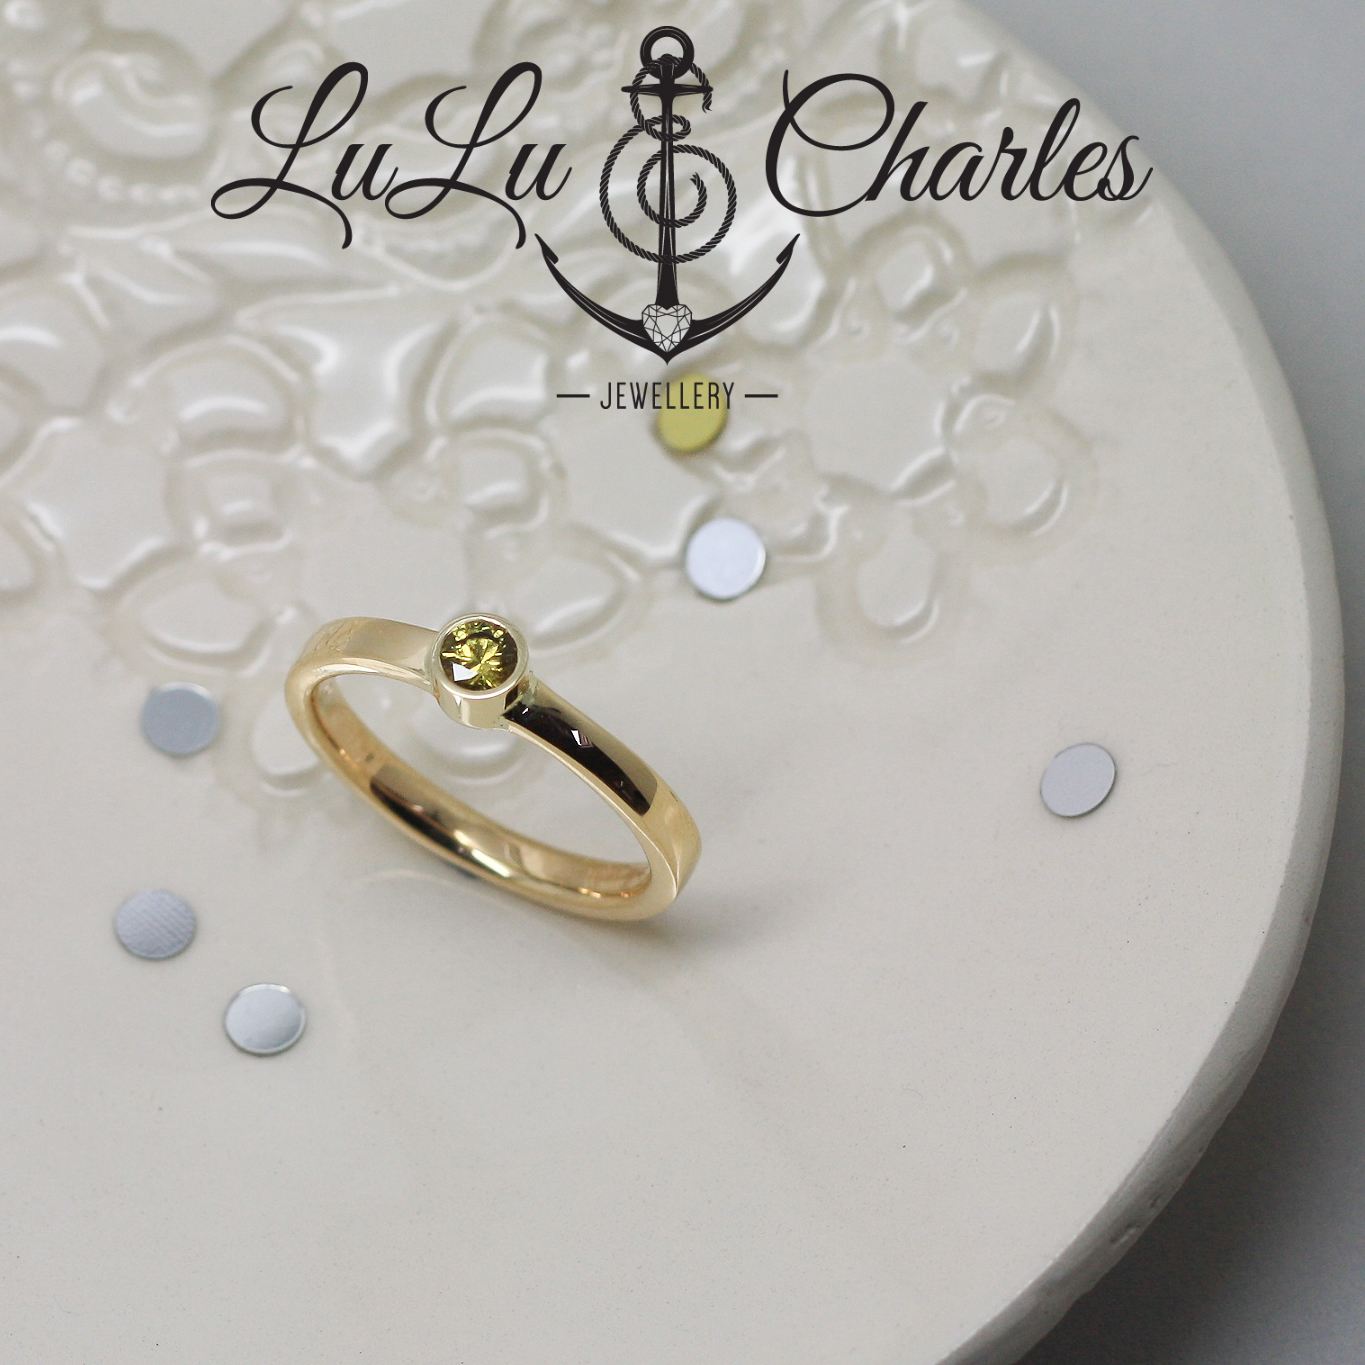 containing cremation ash & hair from a much loved Son, by Lulu & Charles Jewellery Consett, County Durham UK